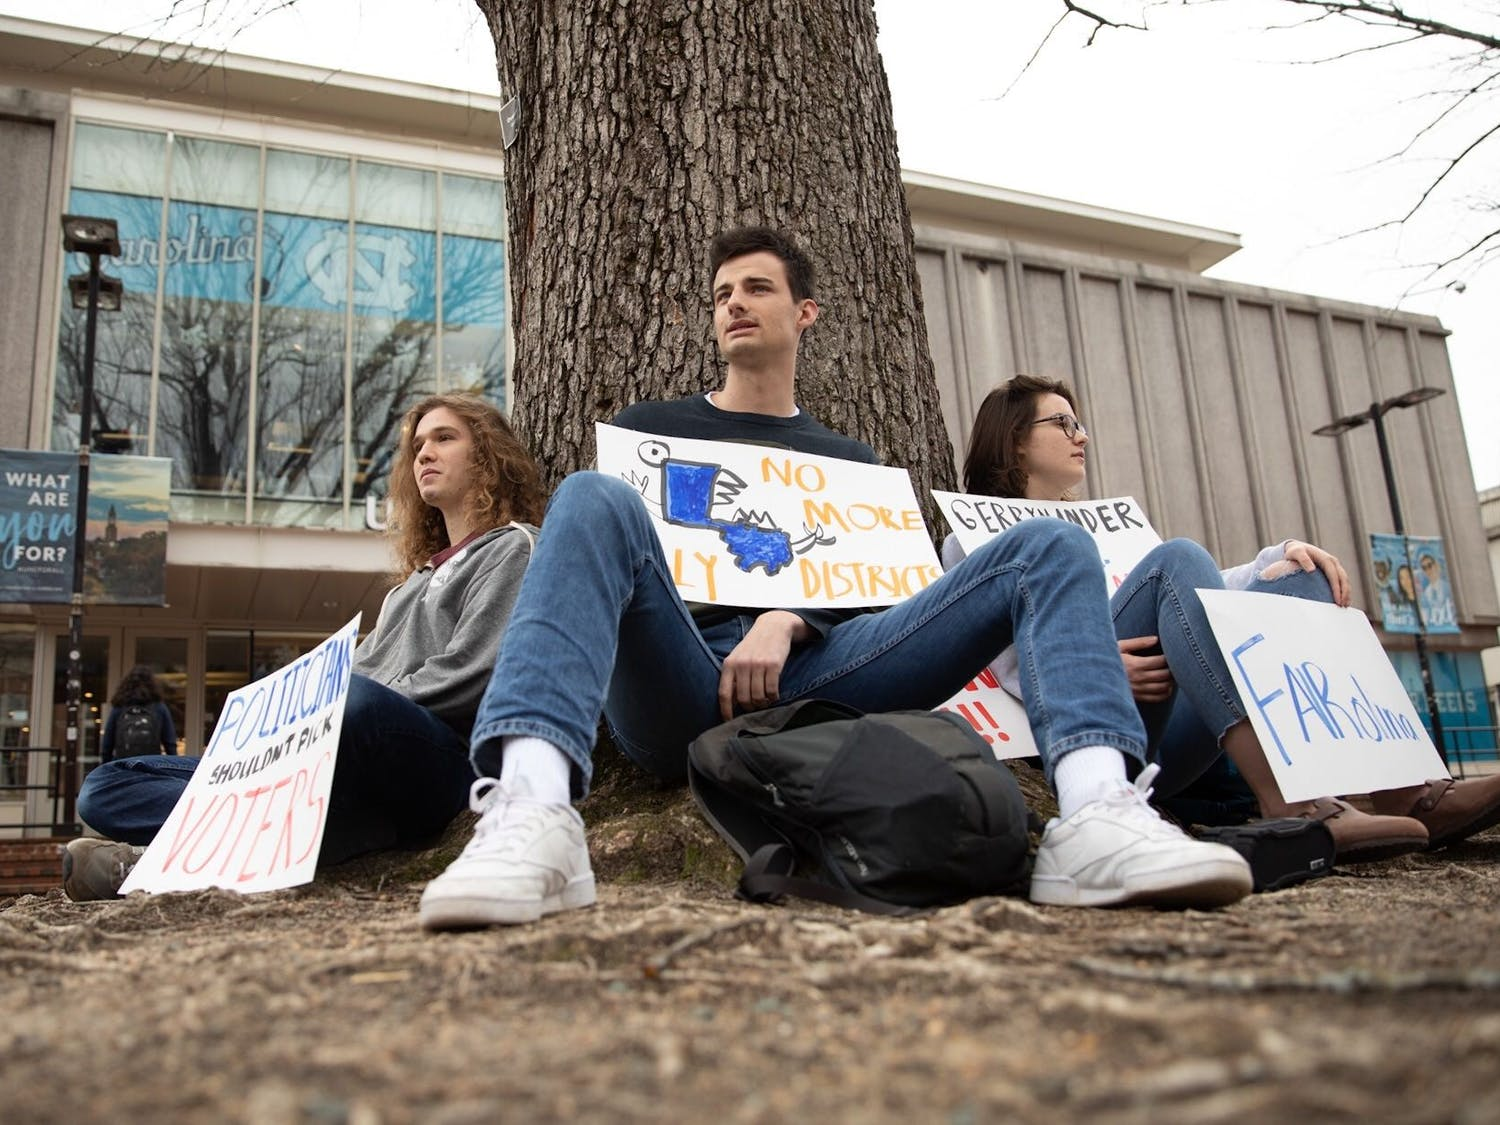 "(From left) Max Kurzman, Patrick Clinch, Annie Evans sit in the pit on Monday, Mar. 2, 2020 for FAIRolina: UNC's Weekly Voting Rights Protest. ""We're mad at the state of voting rights in North Carolina,"" Evans said. ""We're out here every Monday from 12 to 1 protesting a different voting rights issue each week."""